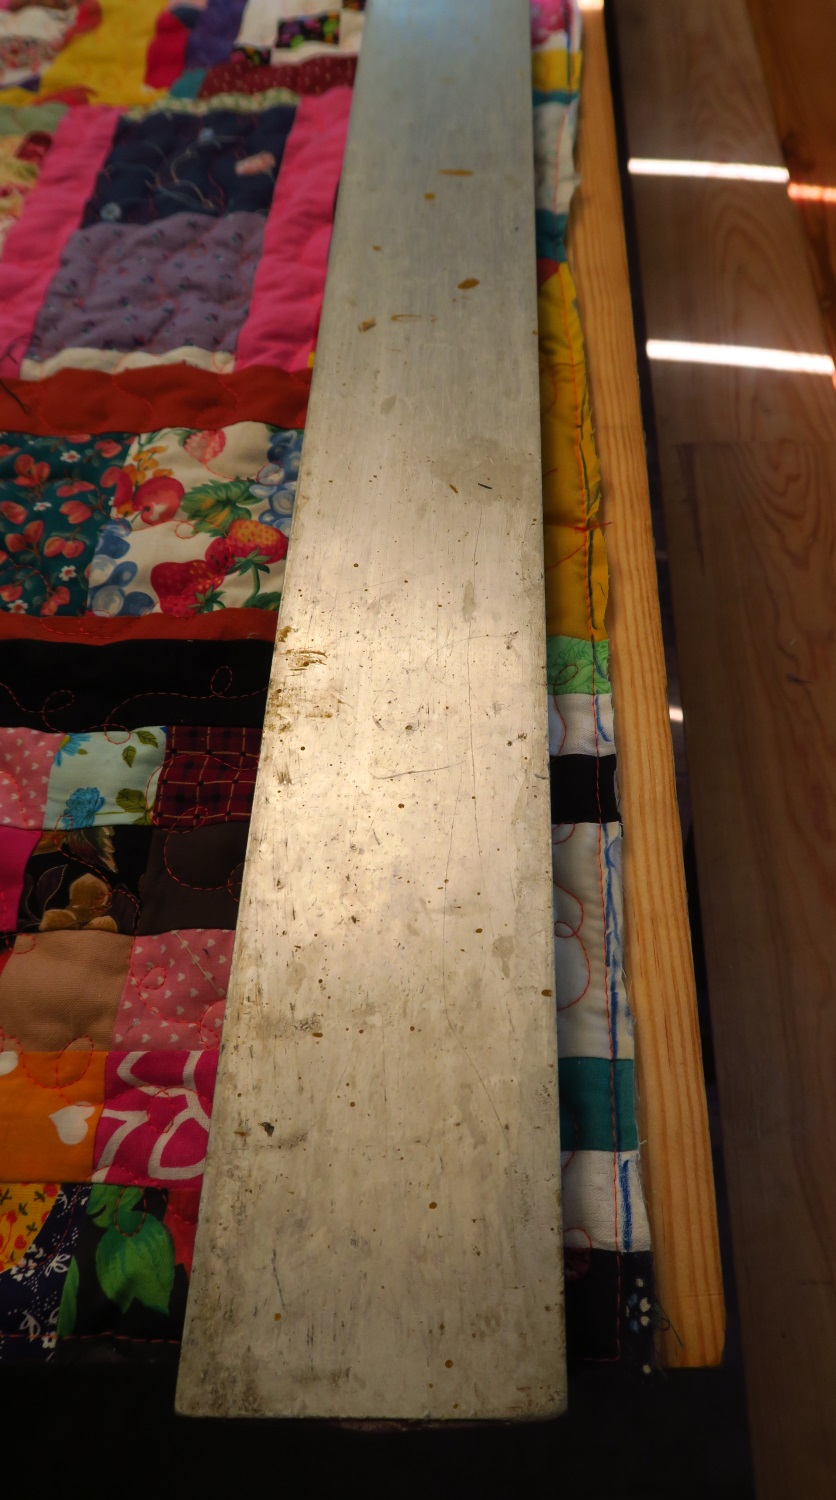 I had to clean my husband's 3 meter metal level with soap and water. I know it looks dirty, but actually that's pretty clean!